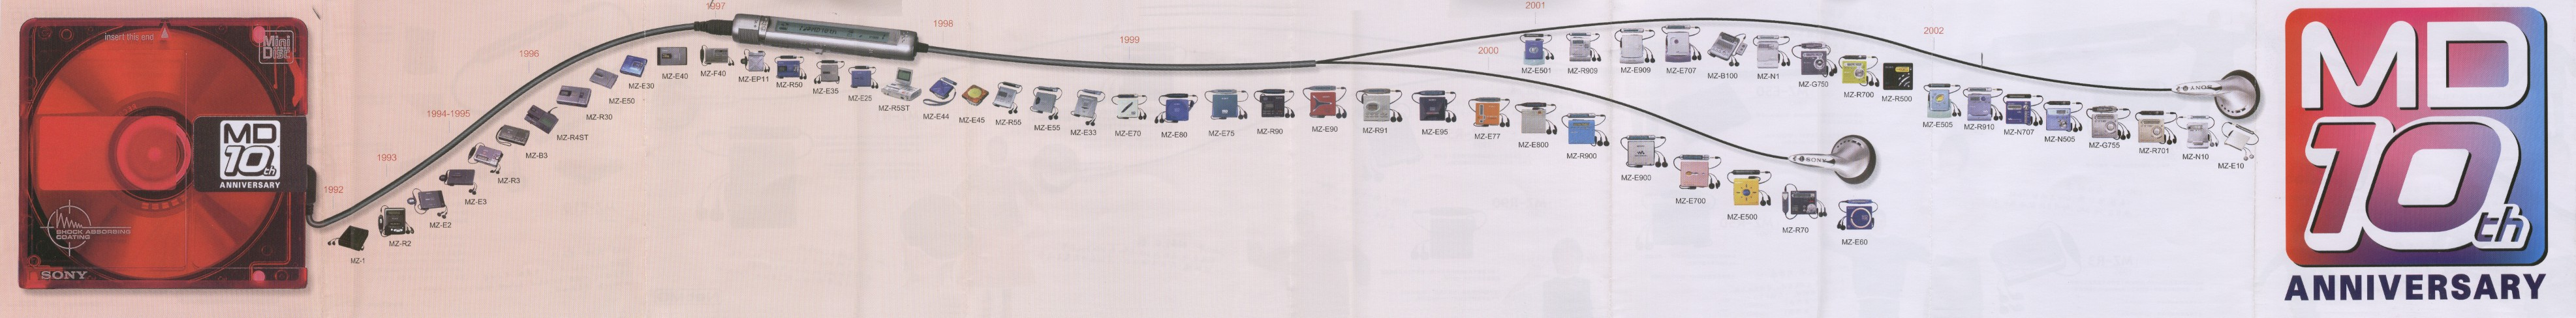 The Whole Minidisc Community Page Guitar Humbucker Coax Wiring Diagrams Timeline